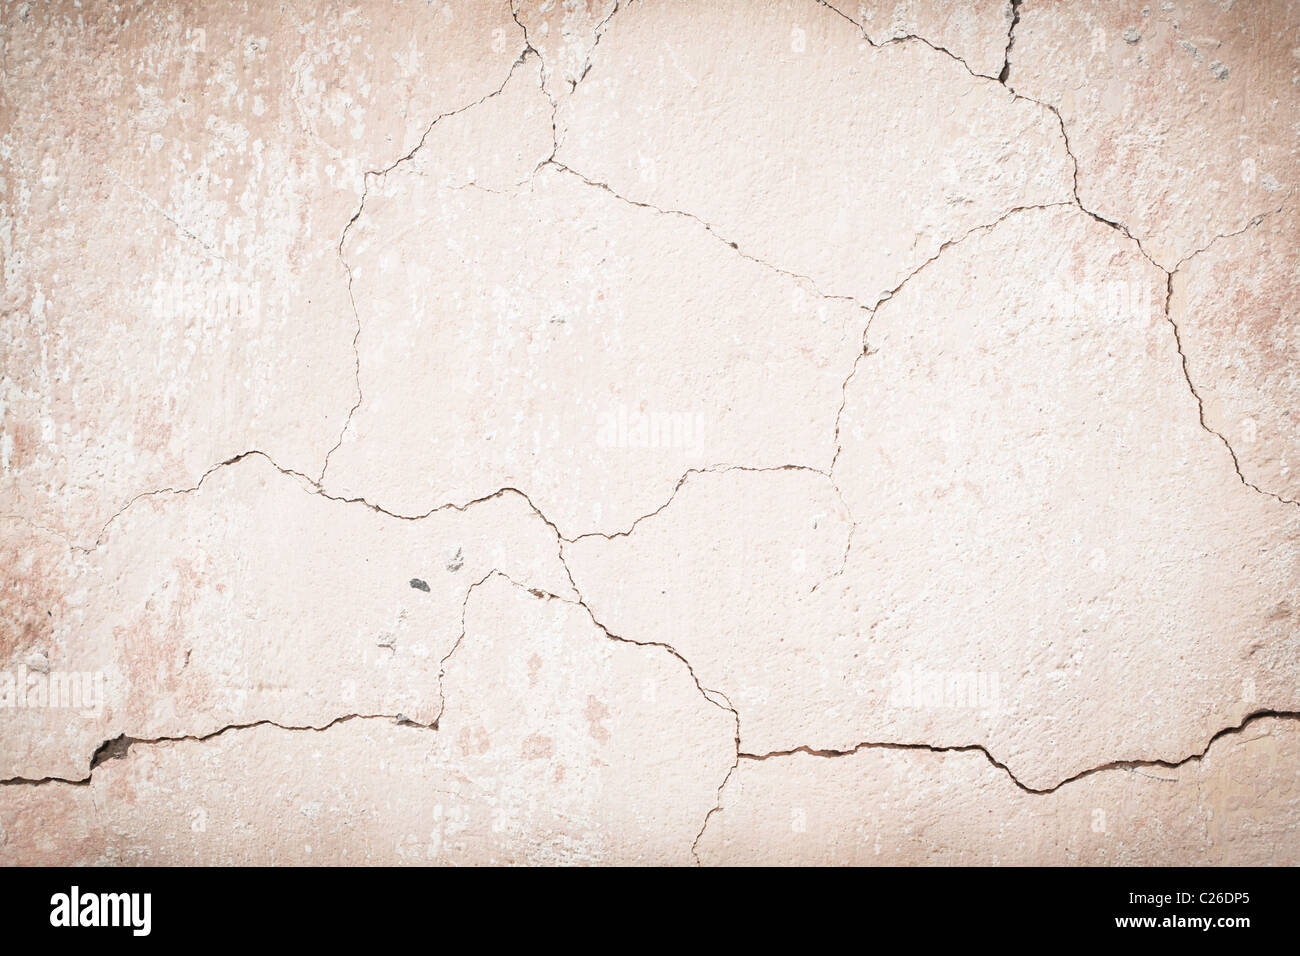 Old cracked wall - Stock Image